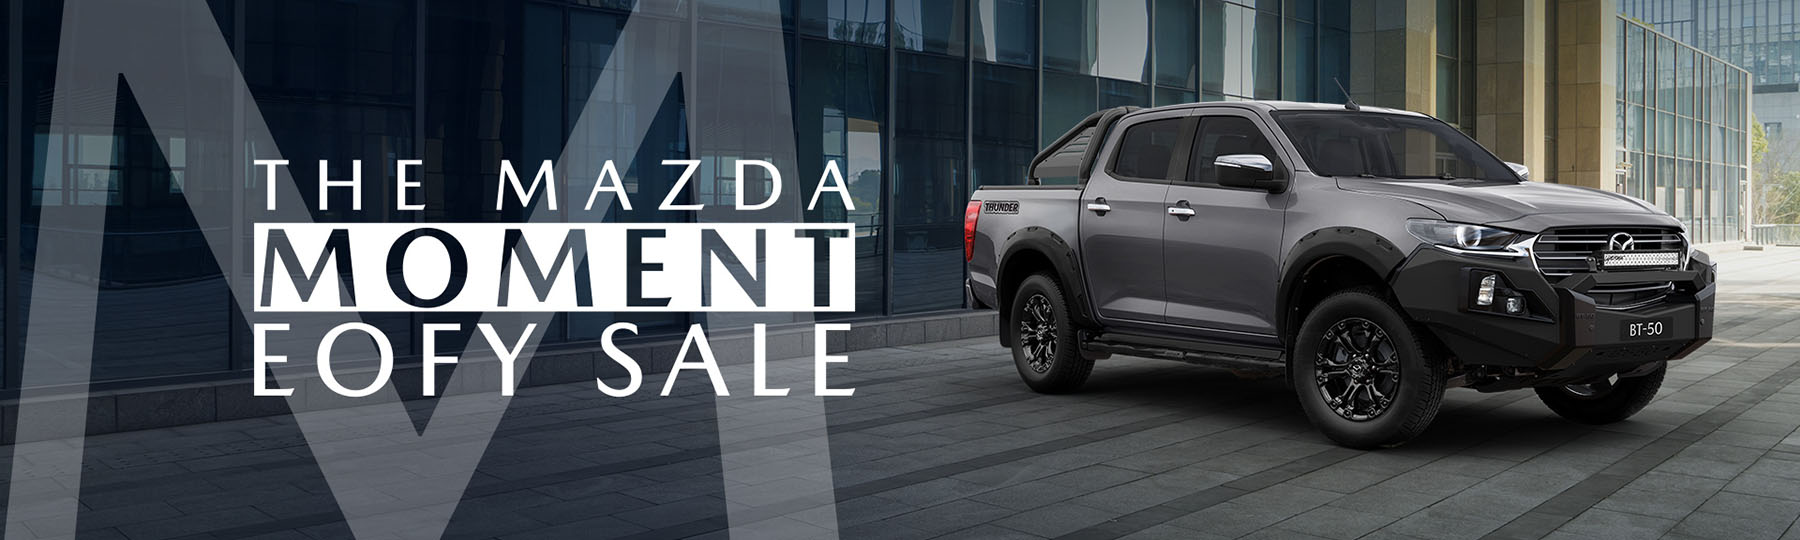 The Mazda Moment EOFY Sale